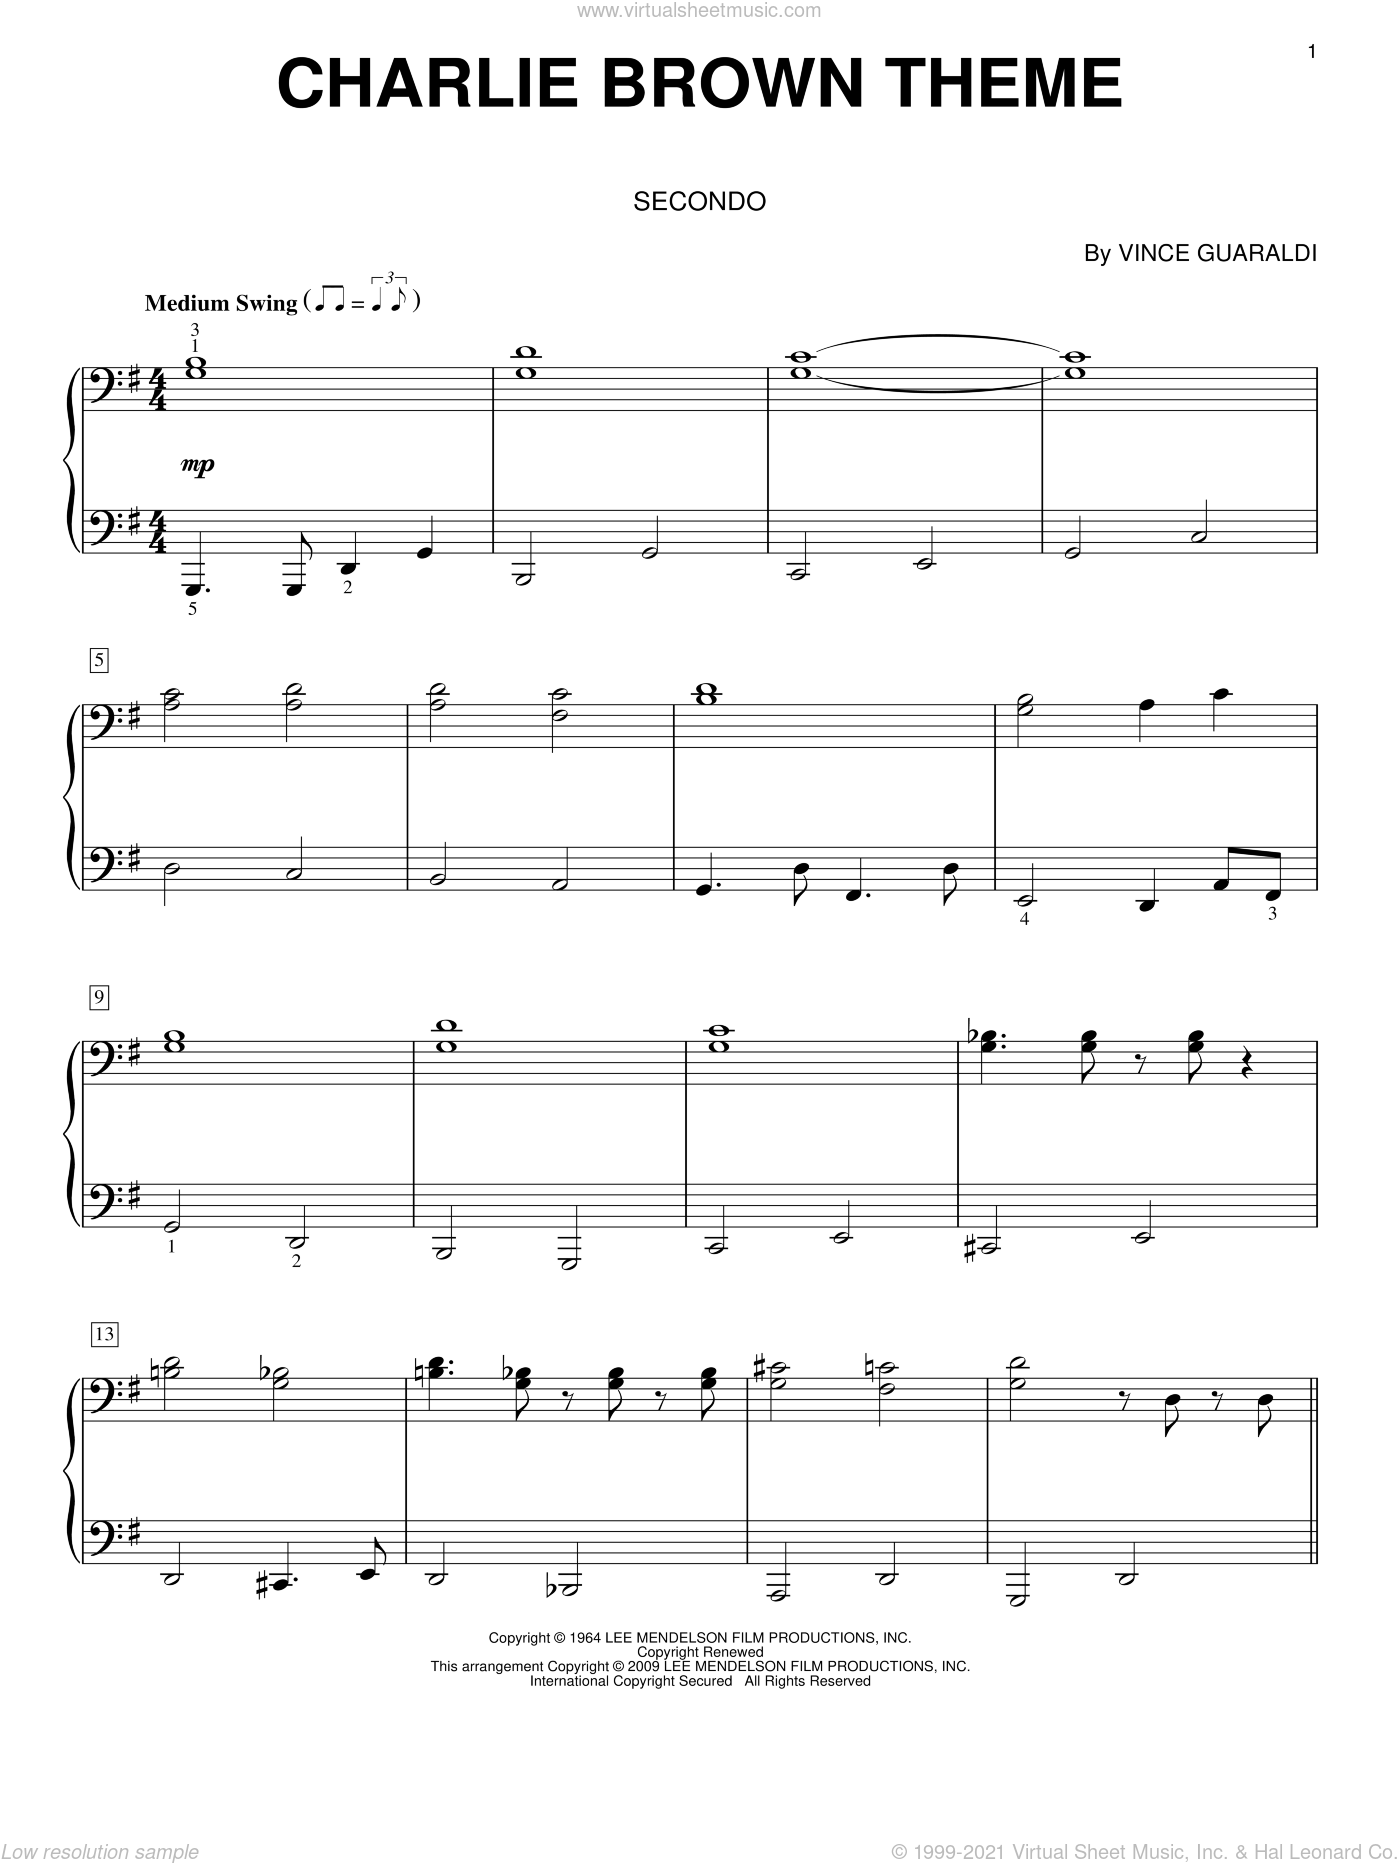 Charlie Brown Theme sheet music for piano four hands (duets) by Vince Guaraldi